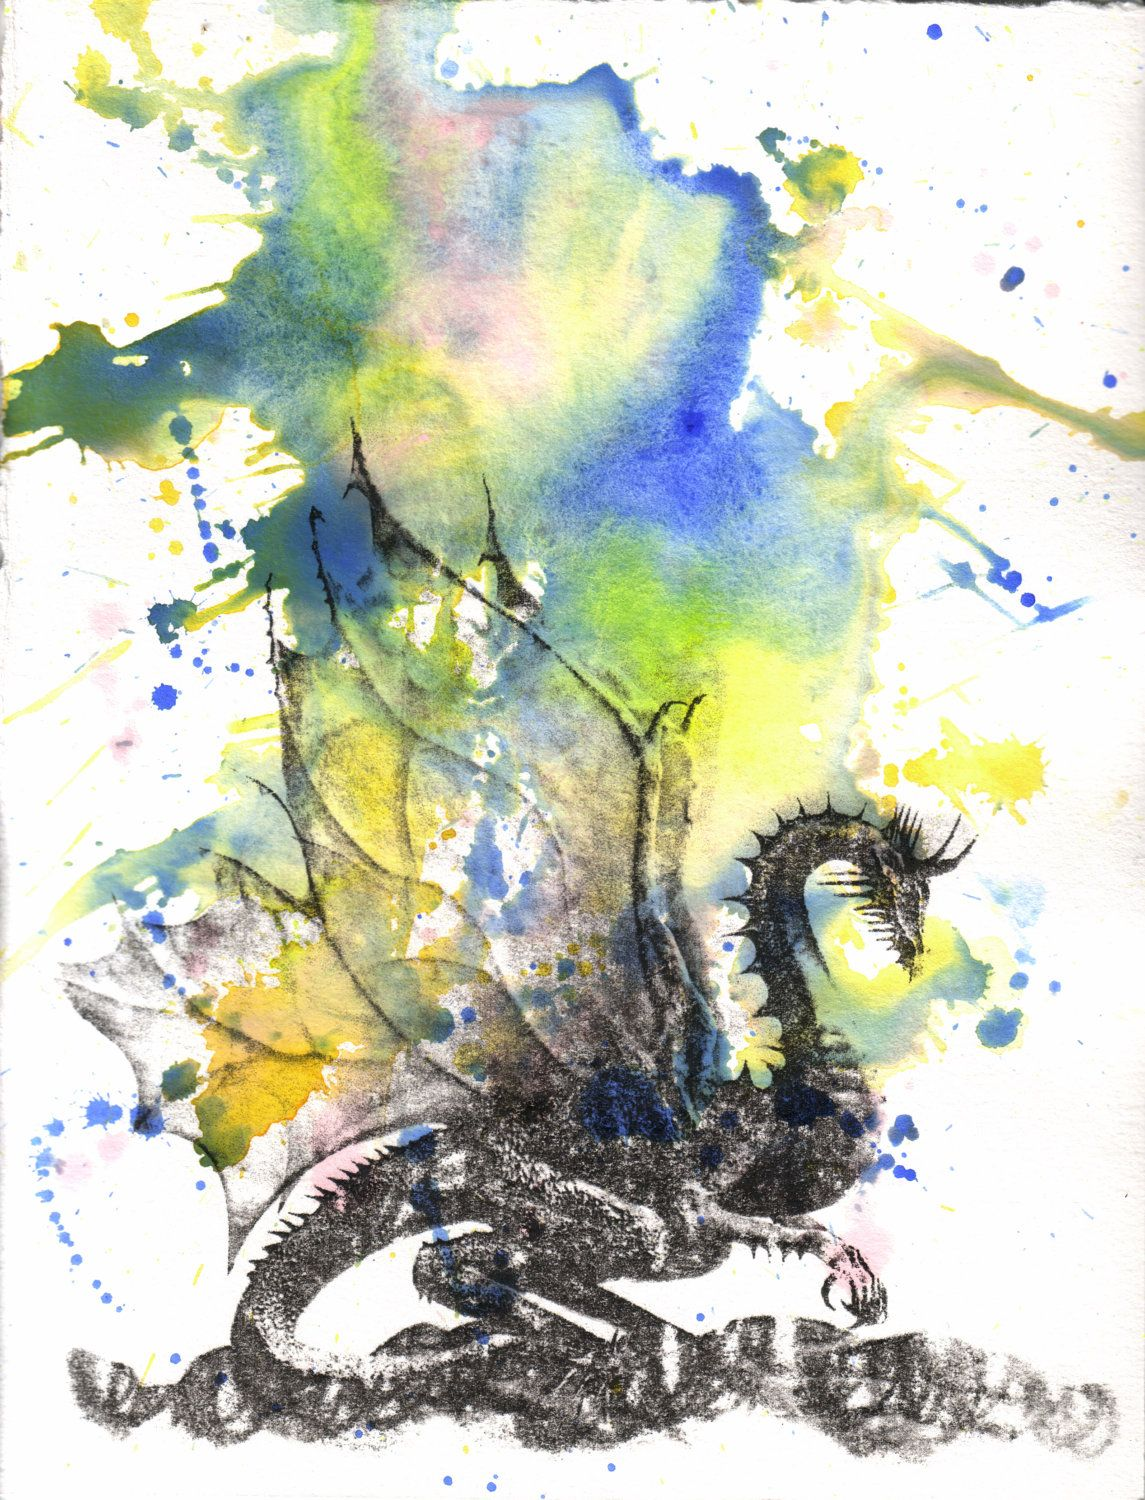 Mythical Dragon Watercolor Painting - Original Watercolor Painting ...